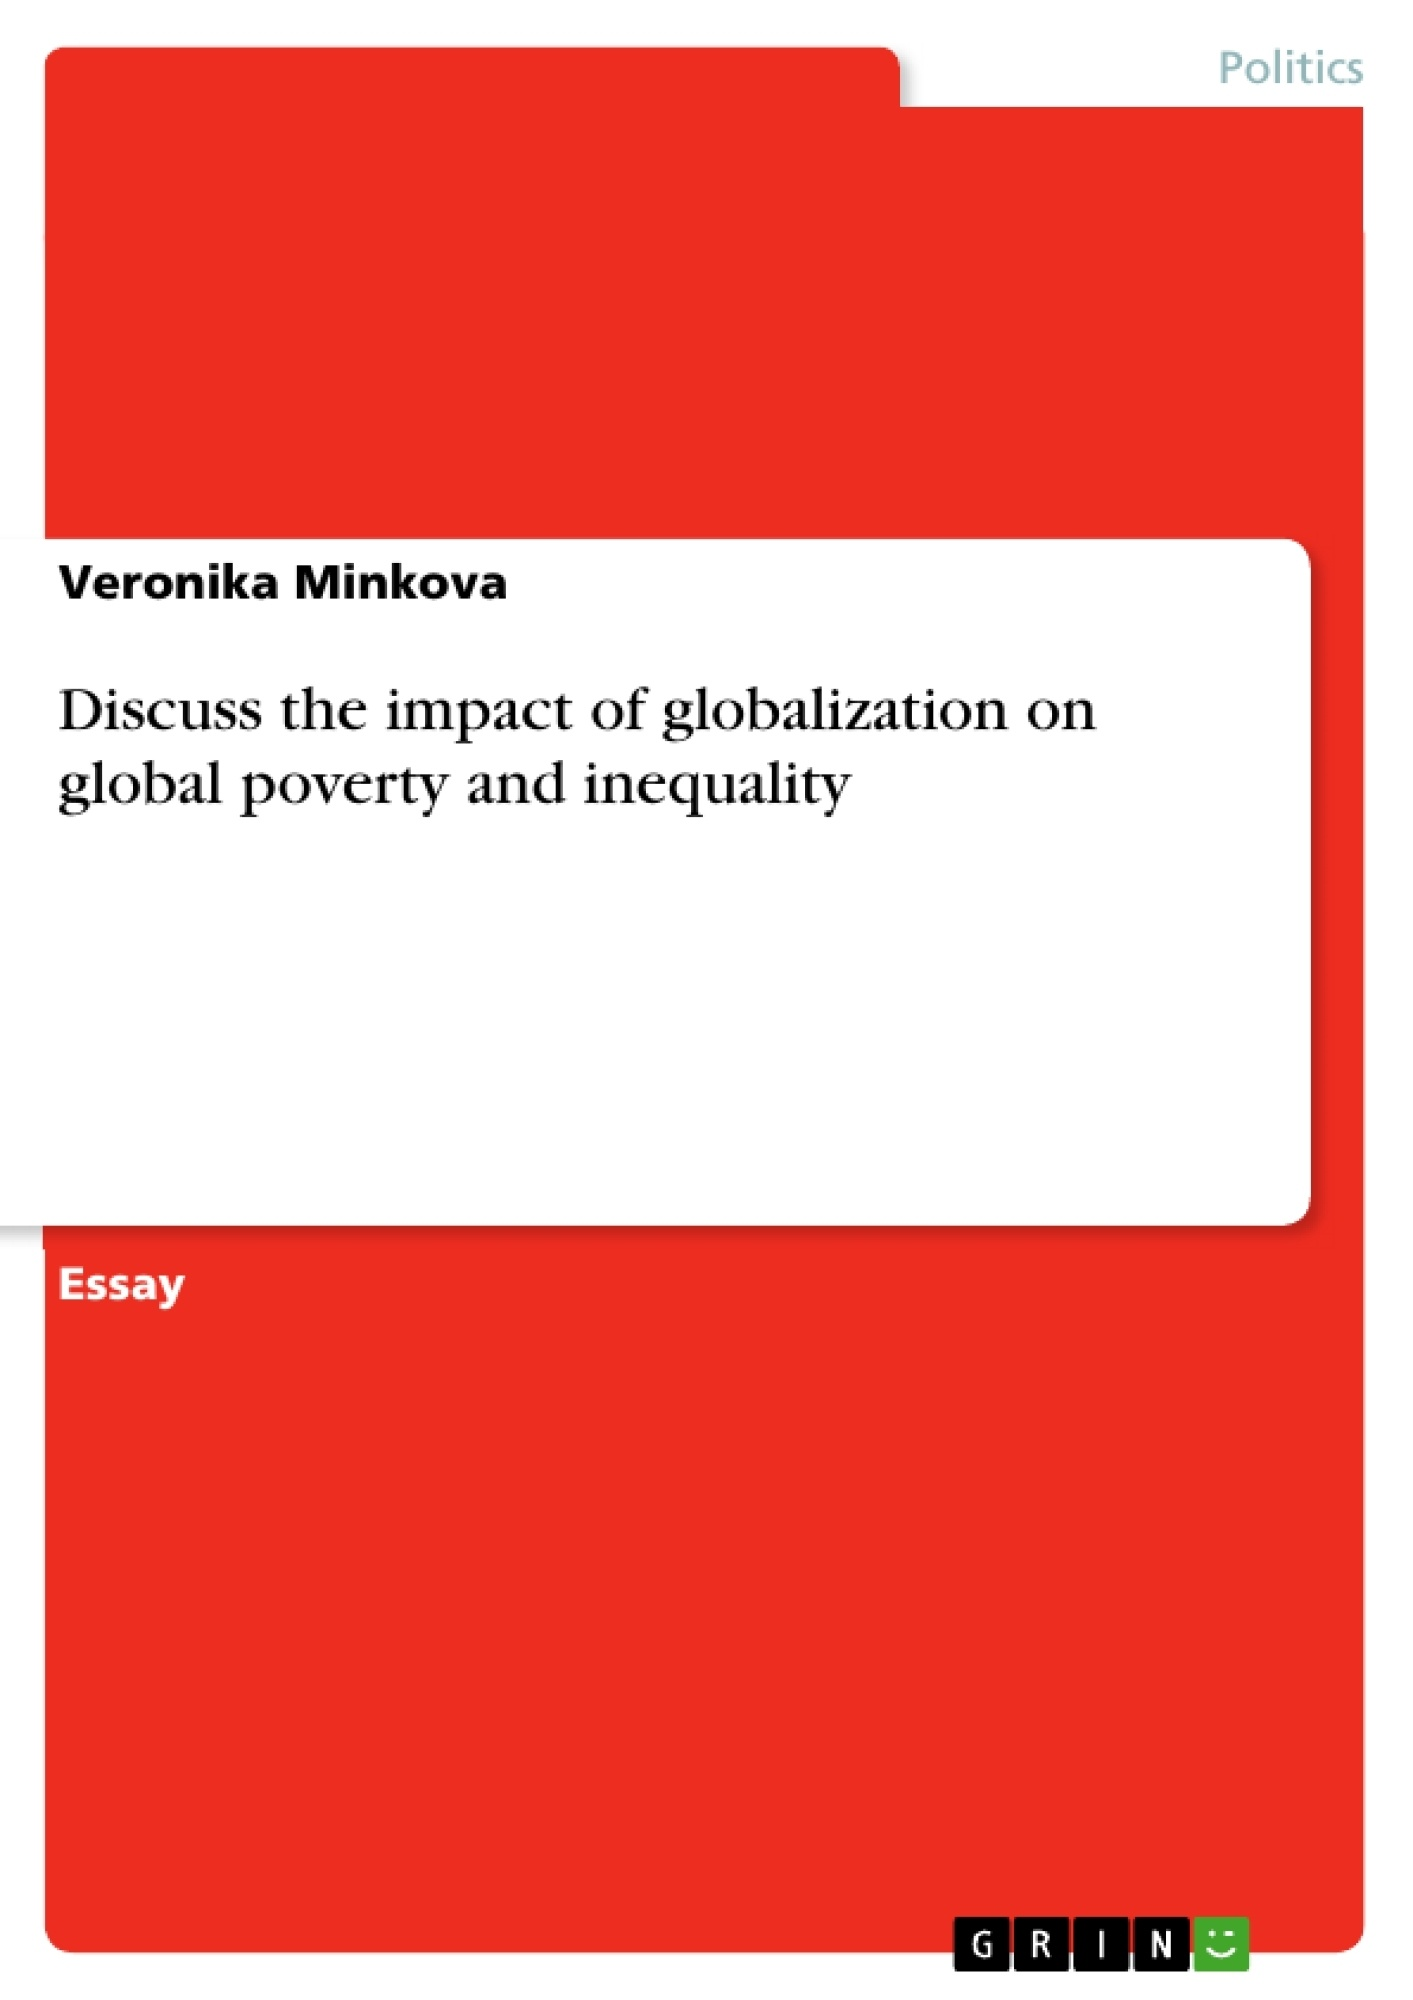 Title: Discuss the impact of globalization on global poverty and inequality